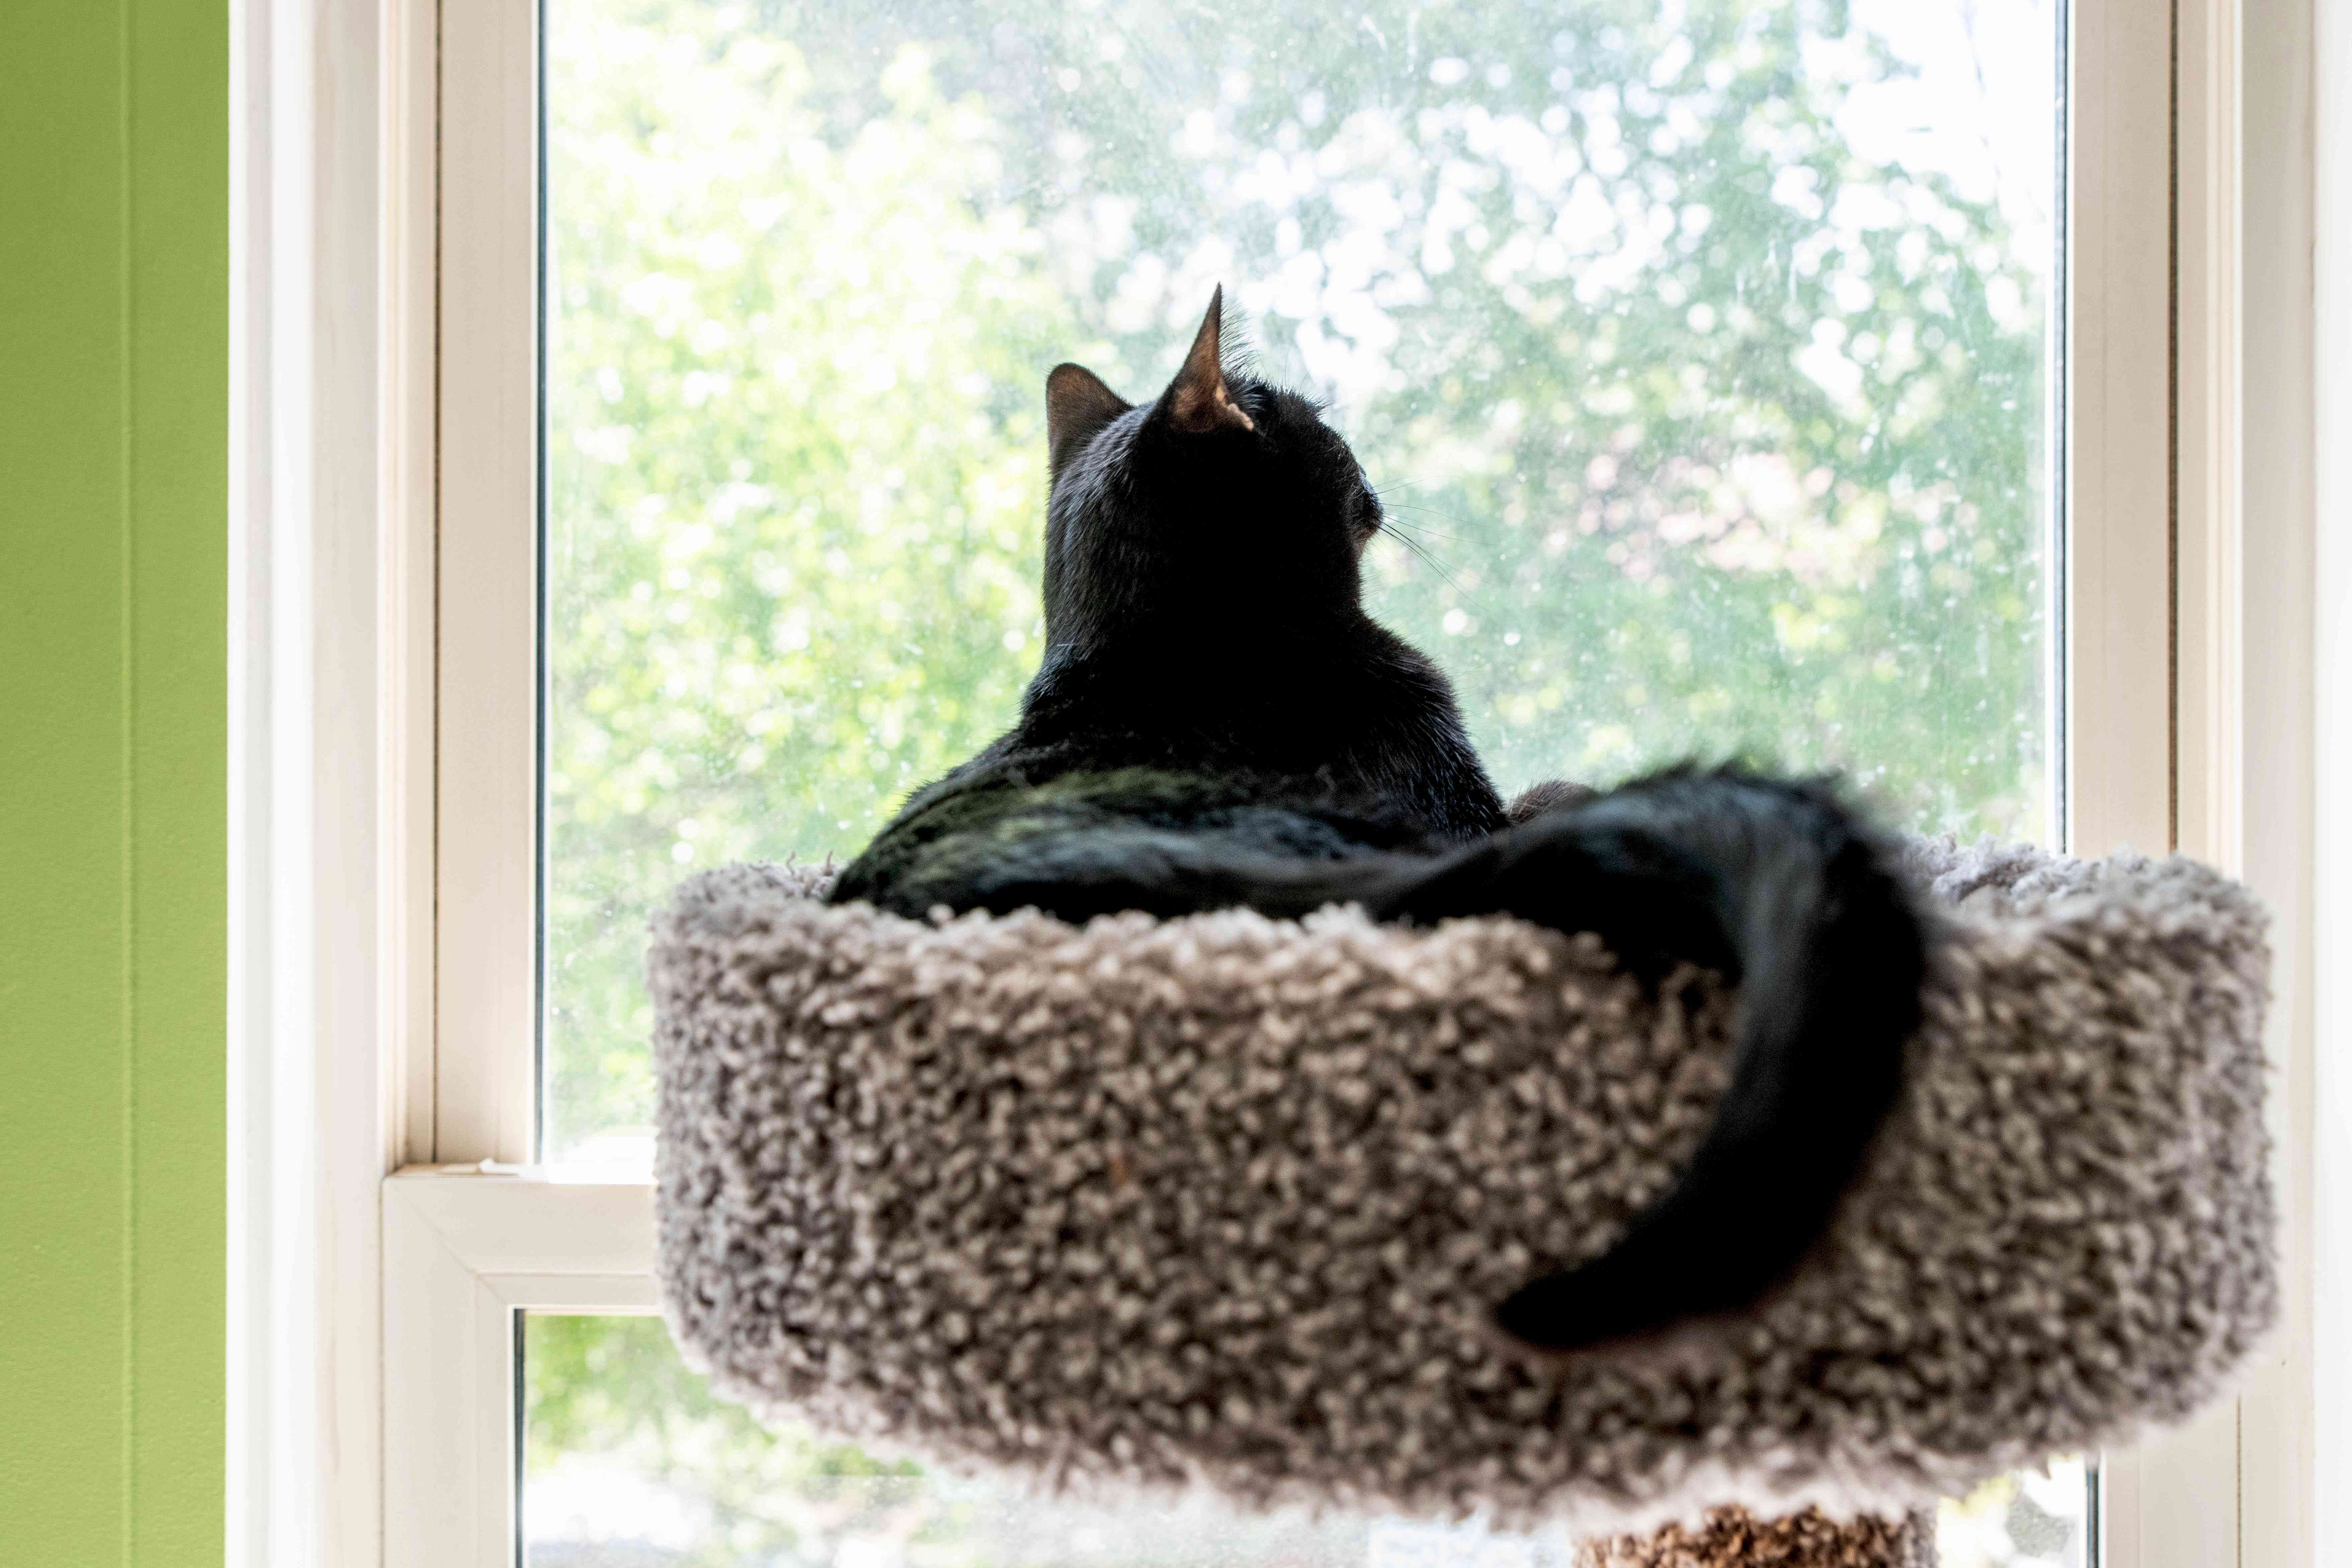 Black cat sitting in cat bed next to bright window